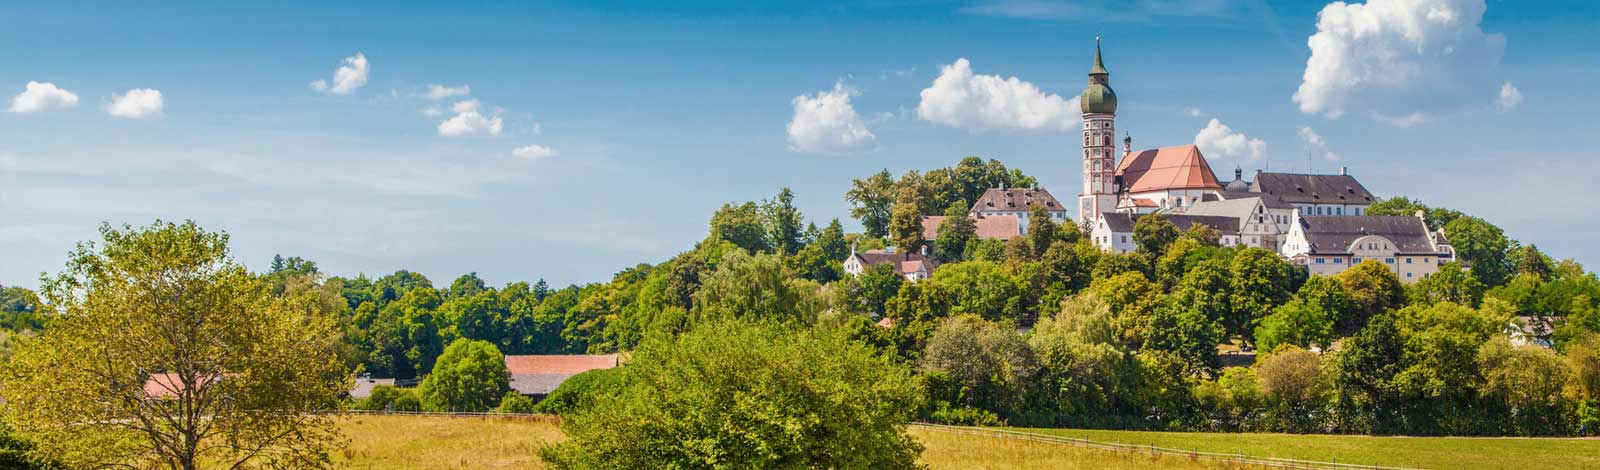 Andechs am Ammersee